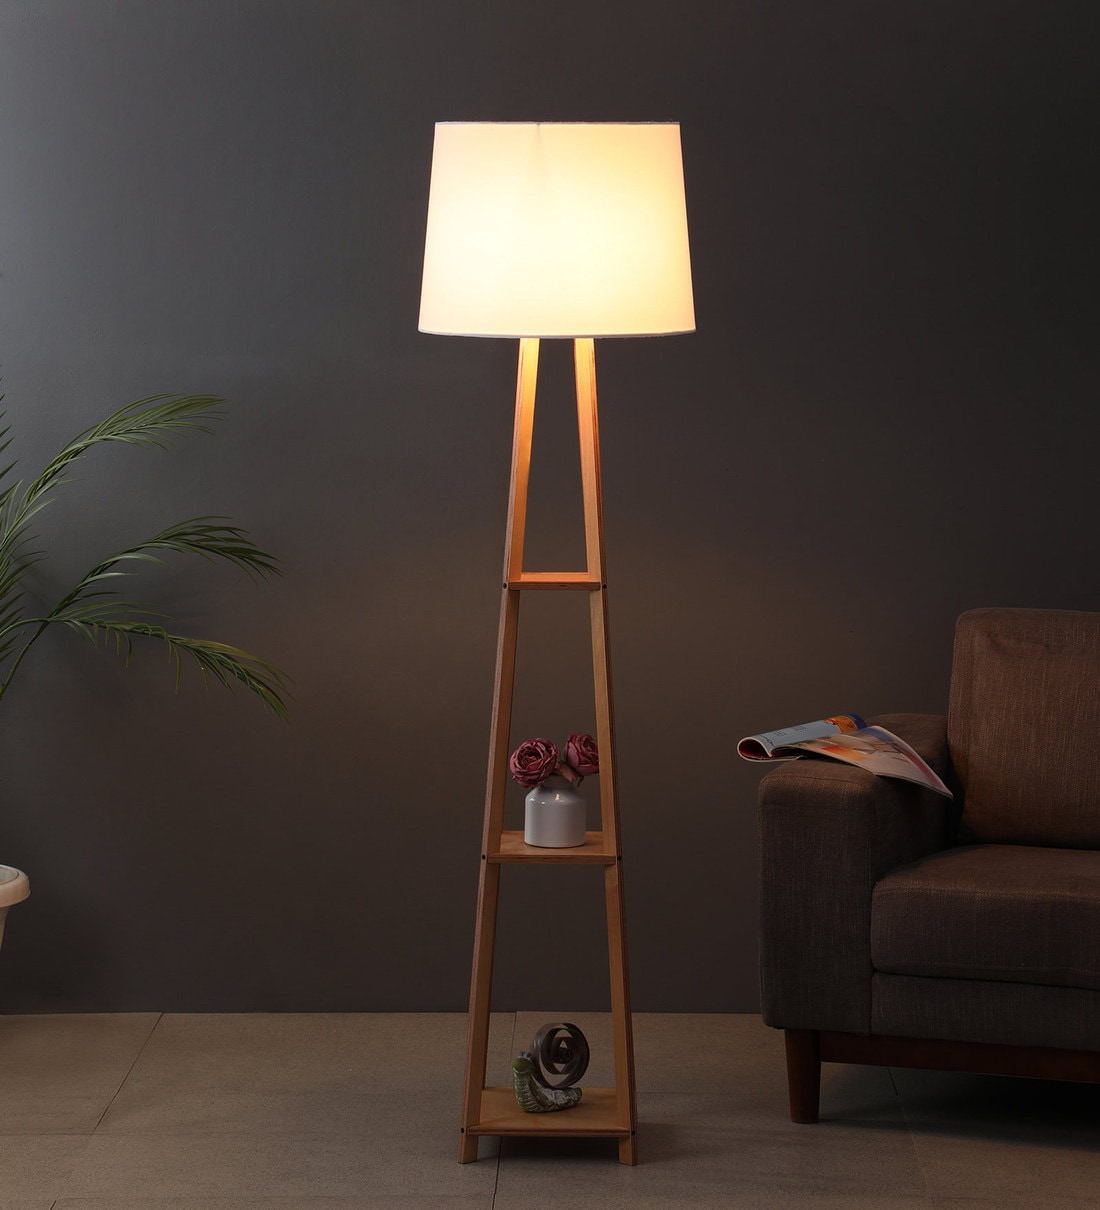 Buy White Fabric Shade Floor Lamp With Brown Base By Casacraft Online Modern And Contemporary Floor Lamps Floor Lamps Lamps Lighting Pepperfry Product